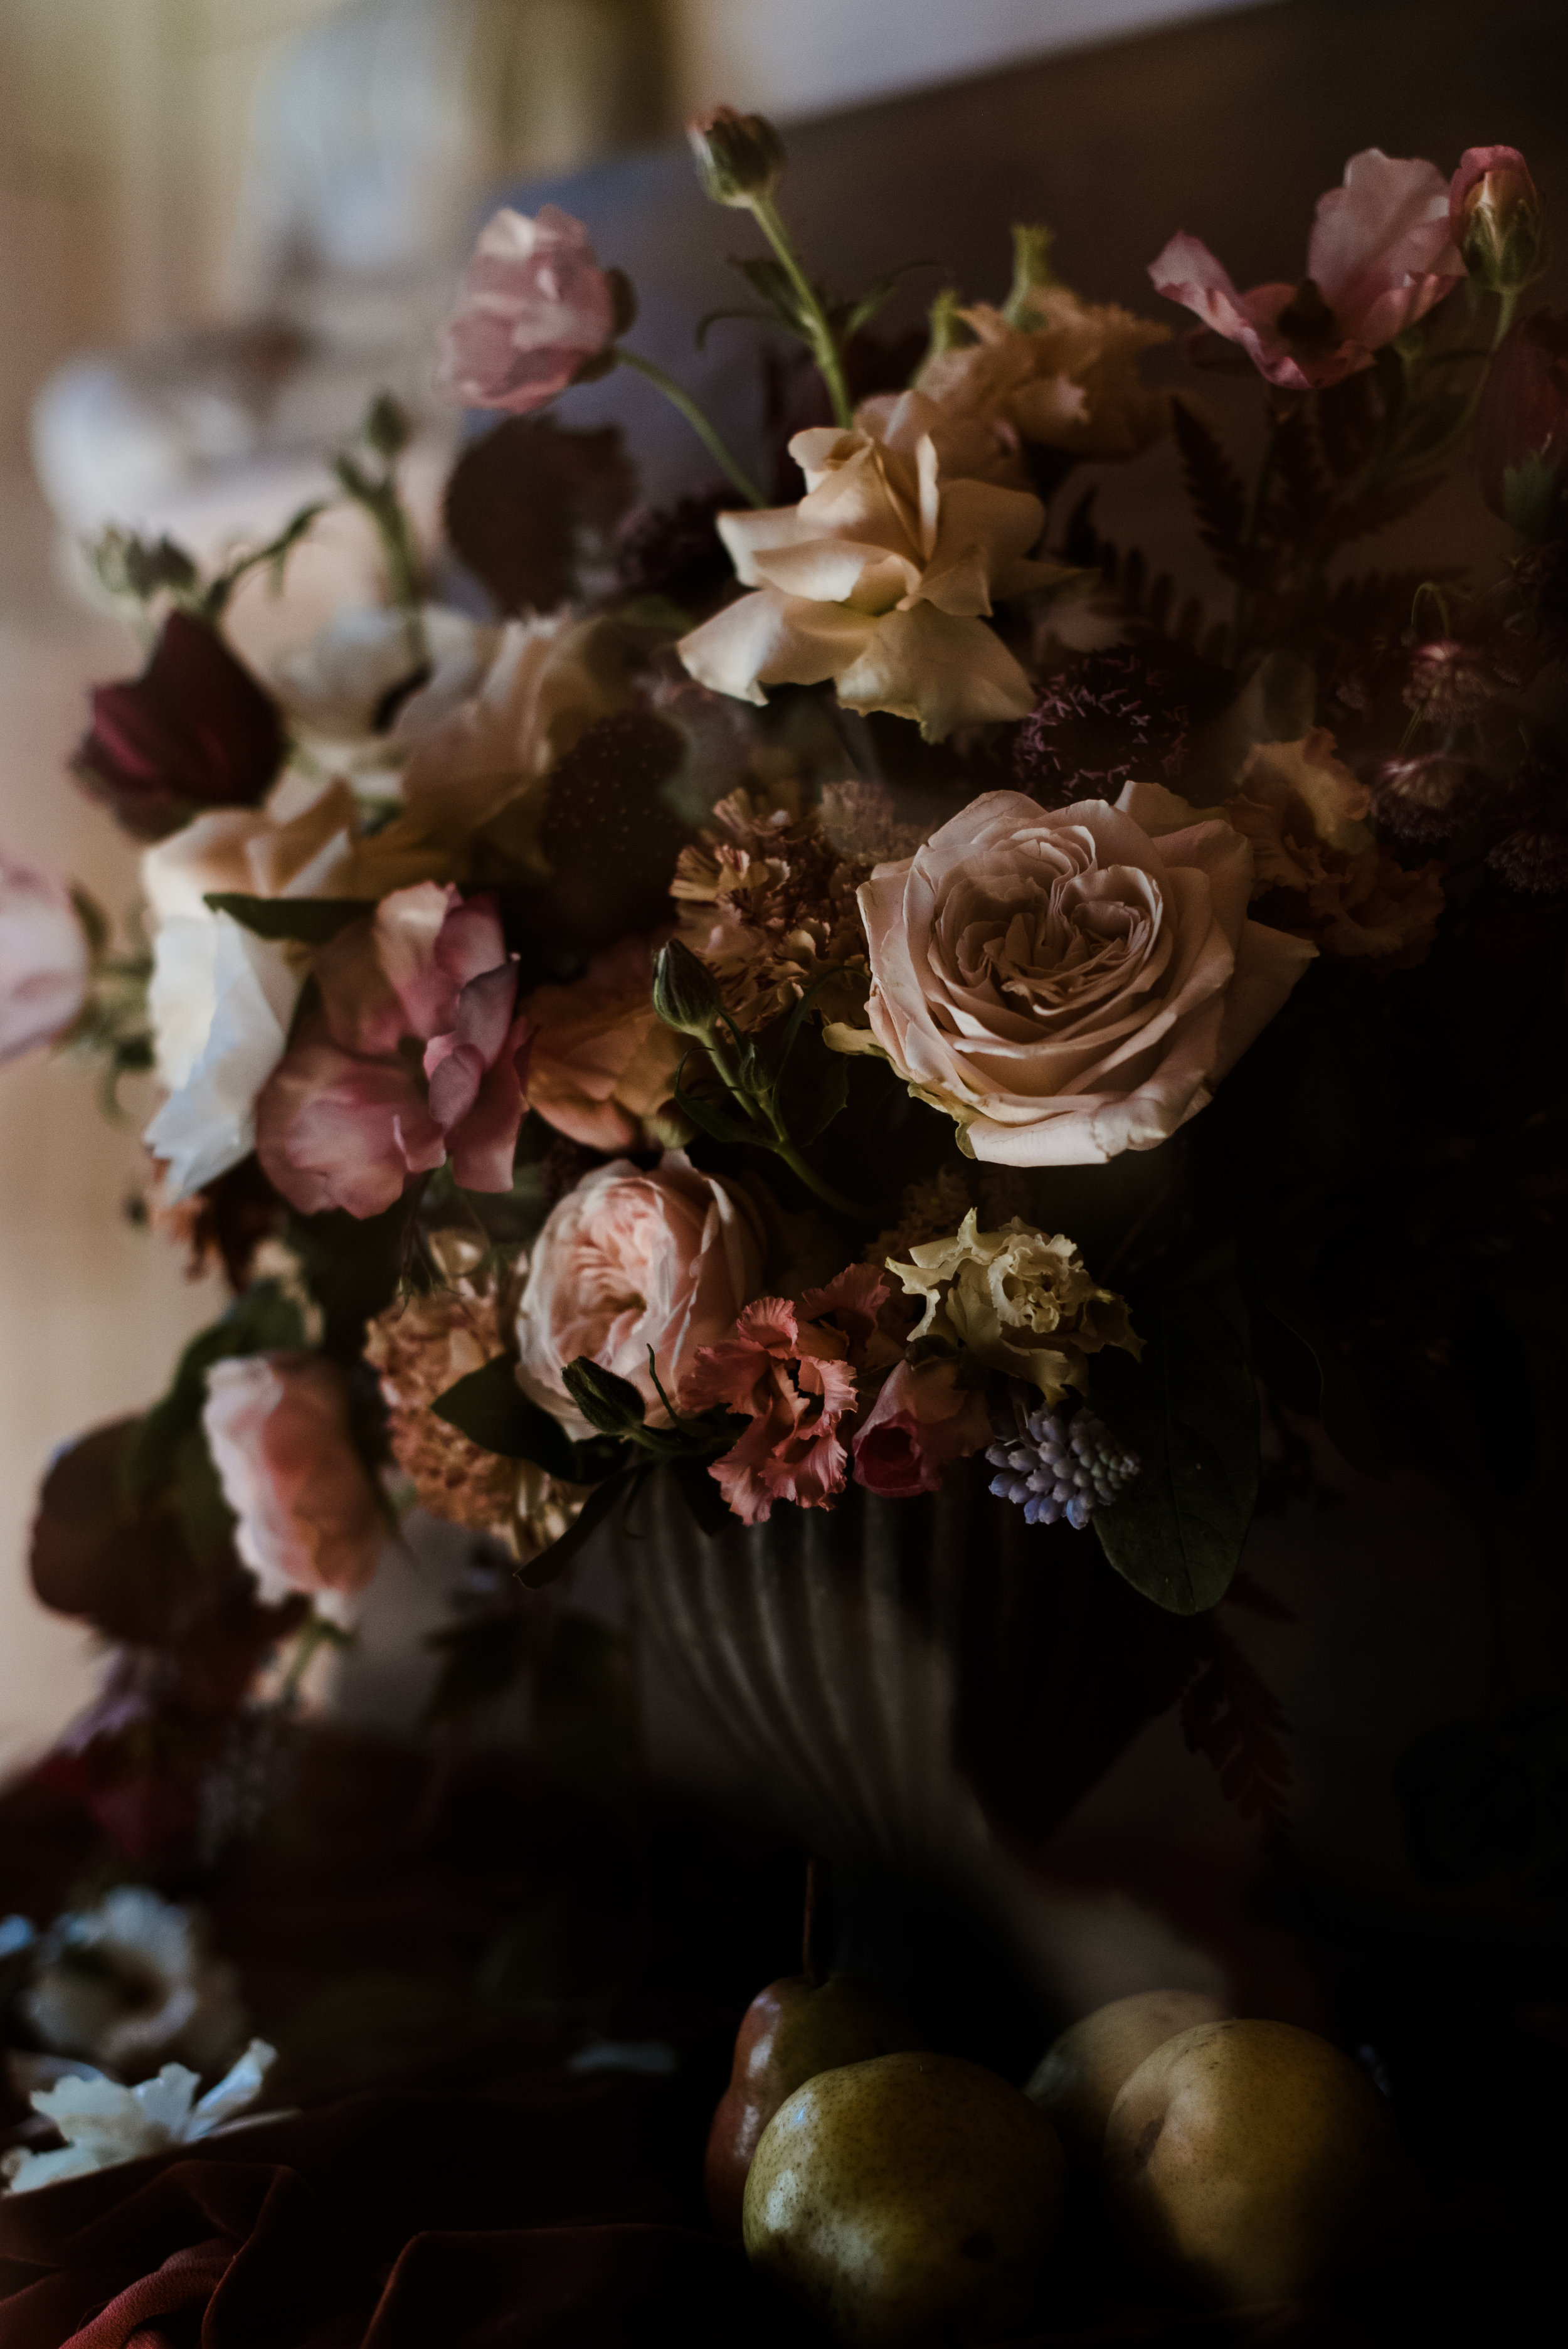 Flower School - Workshops run throughout the year, for small groups to ensure that each participant gets plenty of individual attention. Available for Alternative Hen Parties and Birthday. Book one of our famous flower crown parties.ENTER